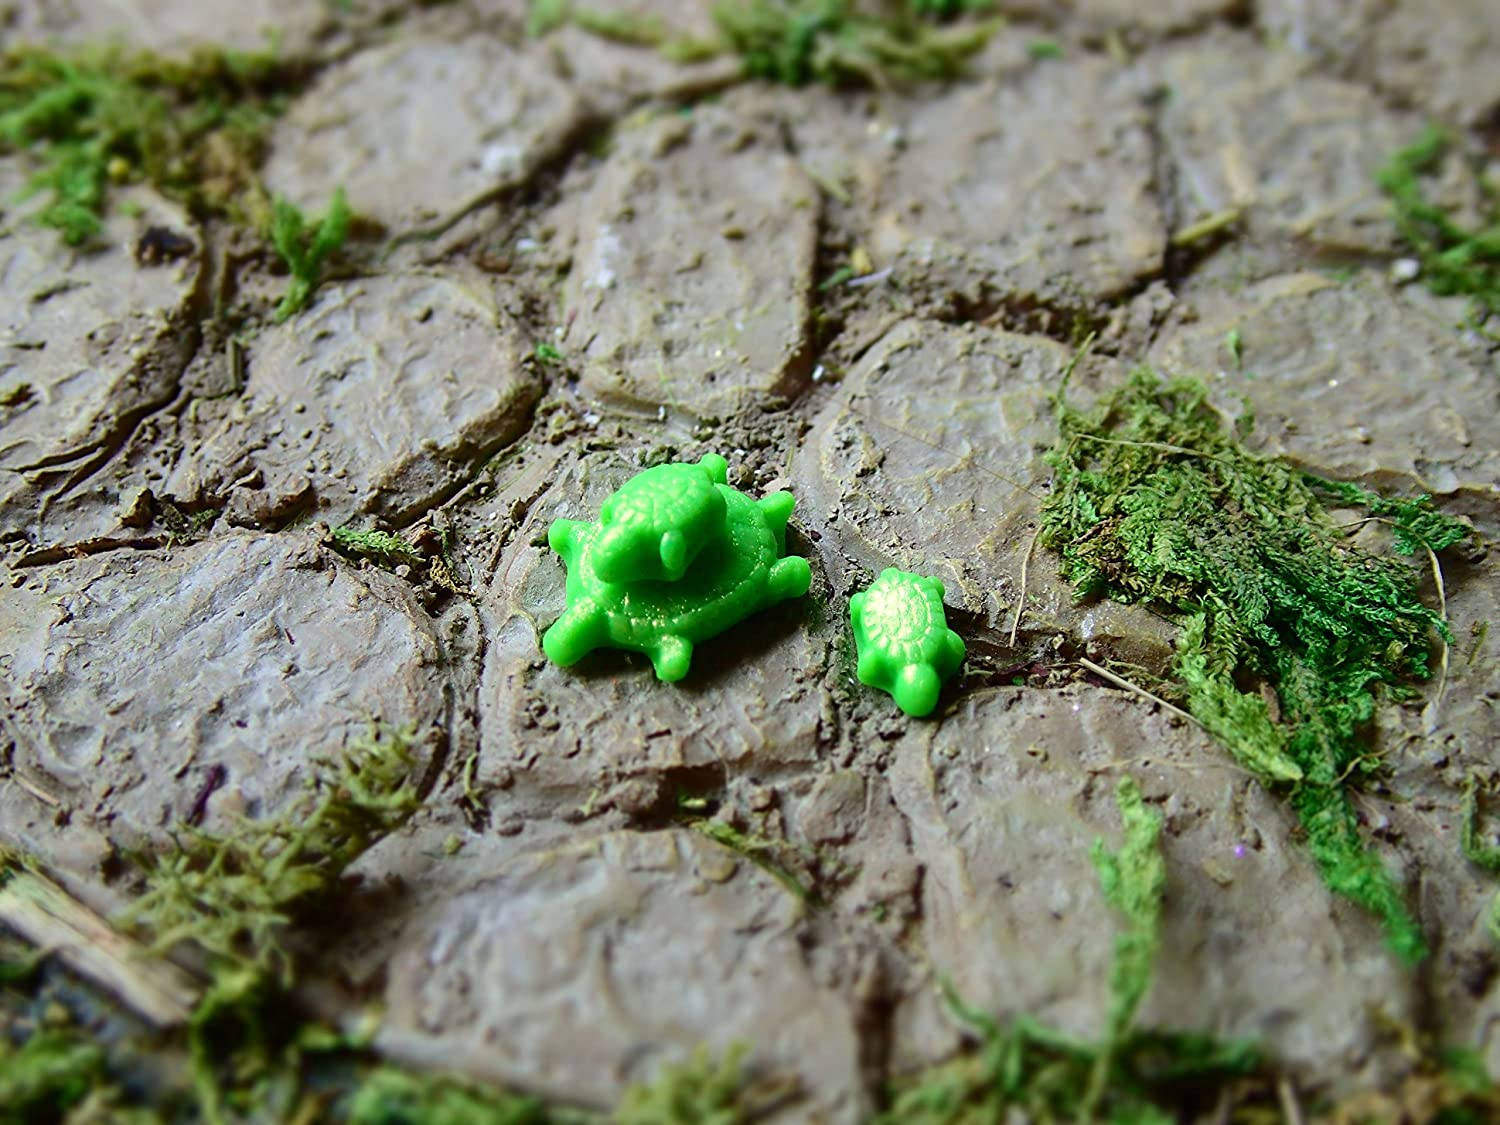 Tiny Turtles for Miniature Fairy Gardens or Micro Gardens! Fairy Garden Animals, Supplies, Decorations, and Accessories